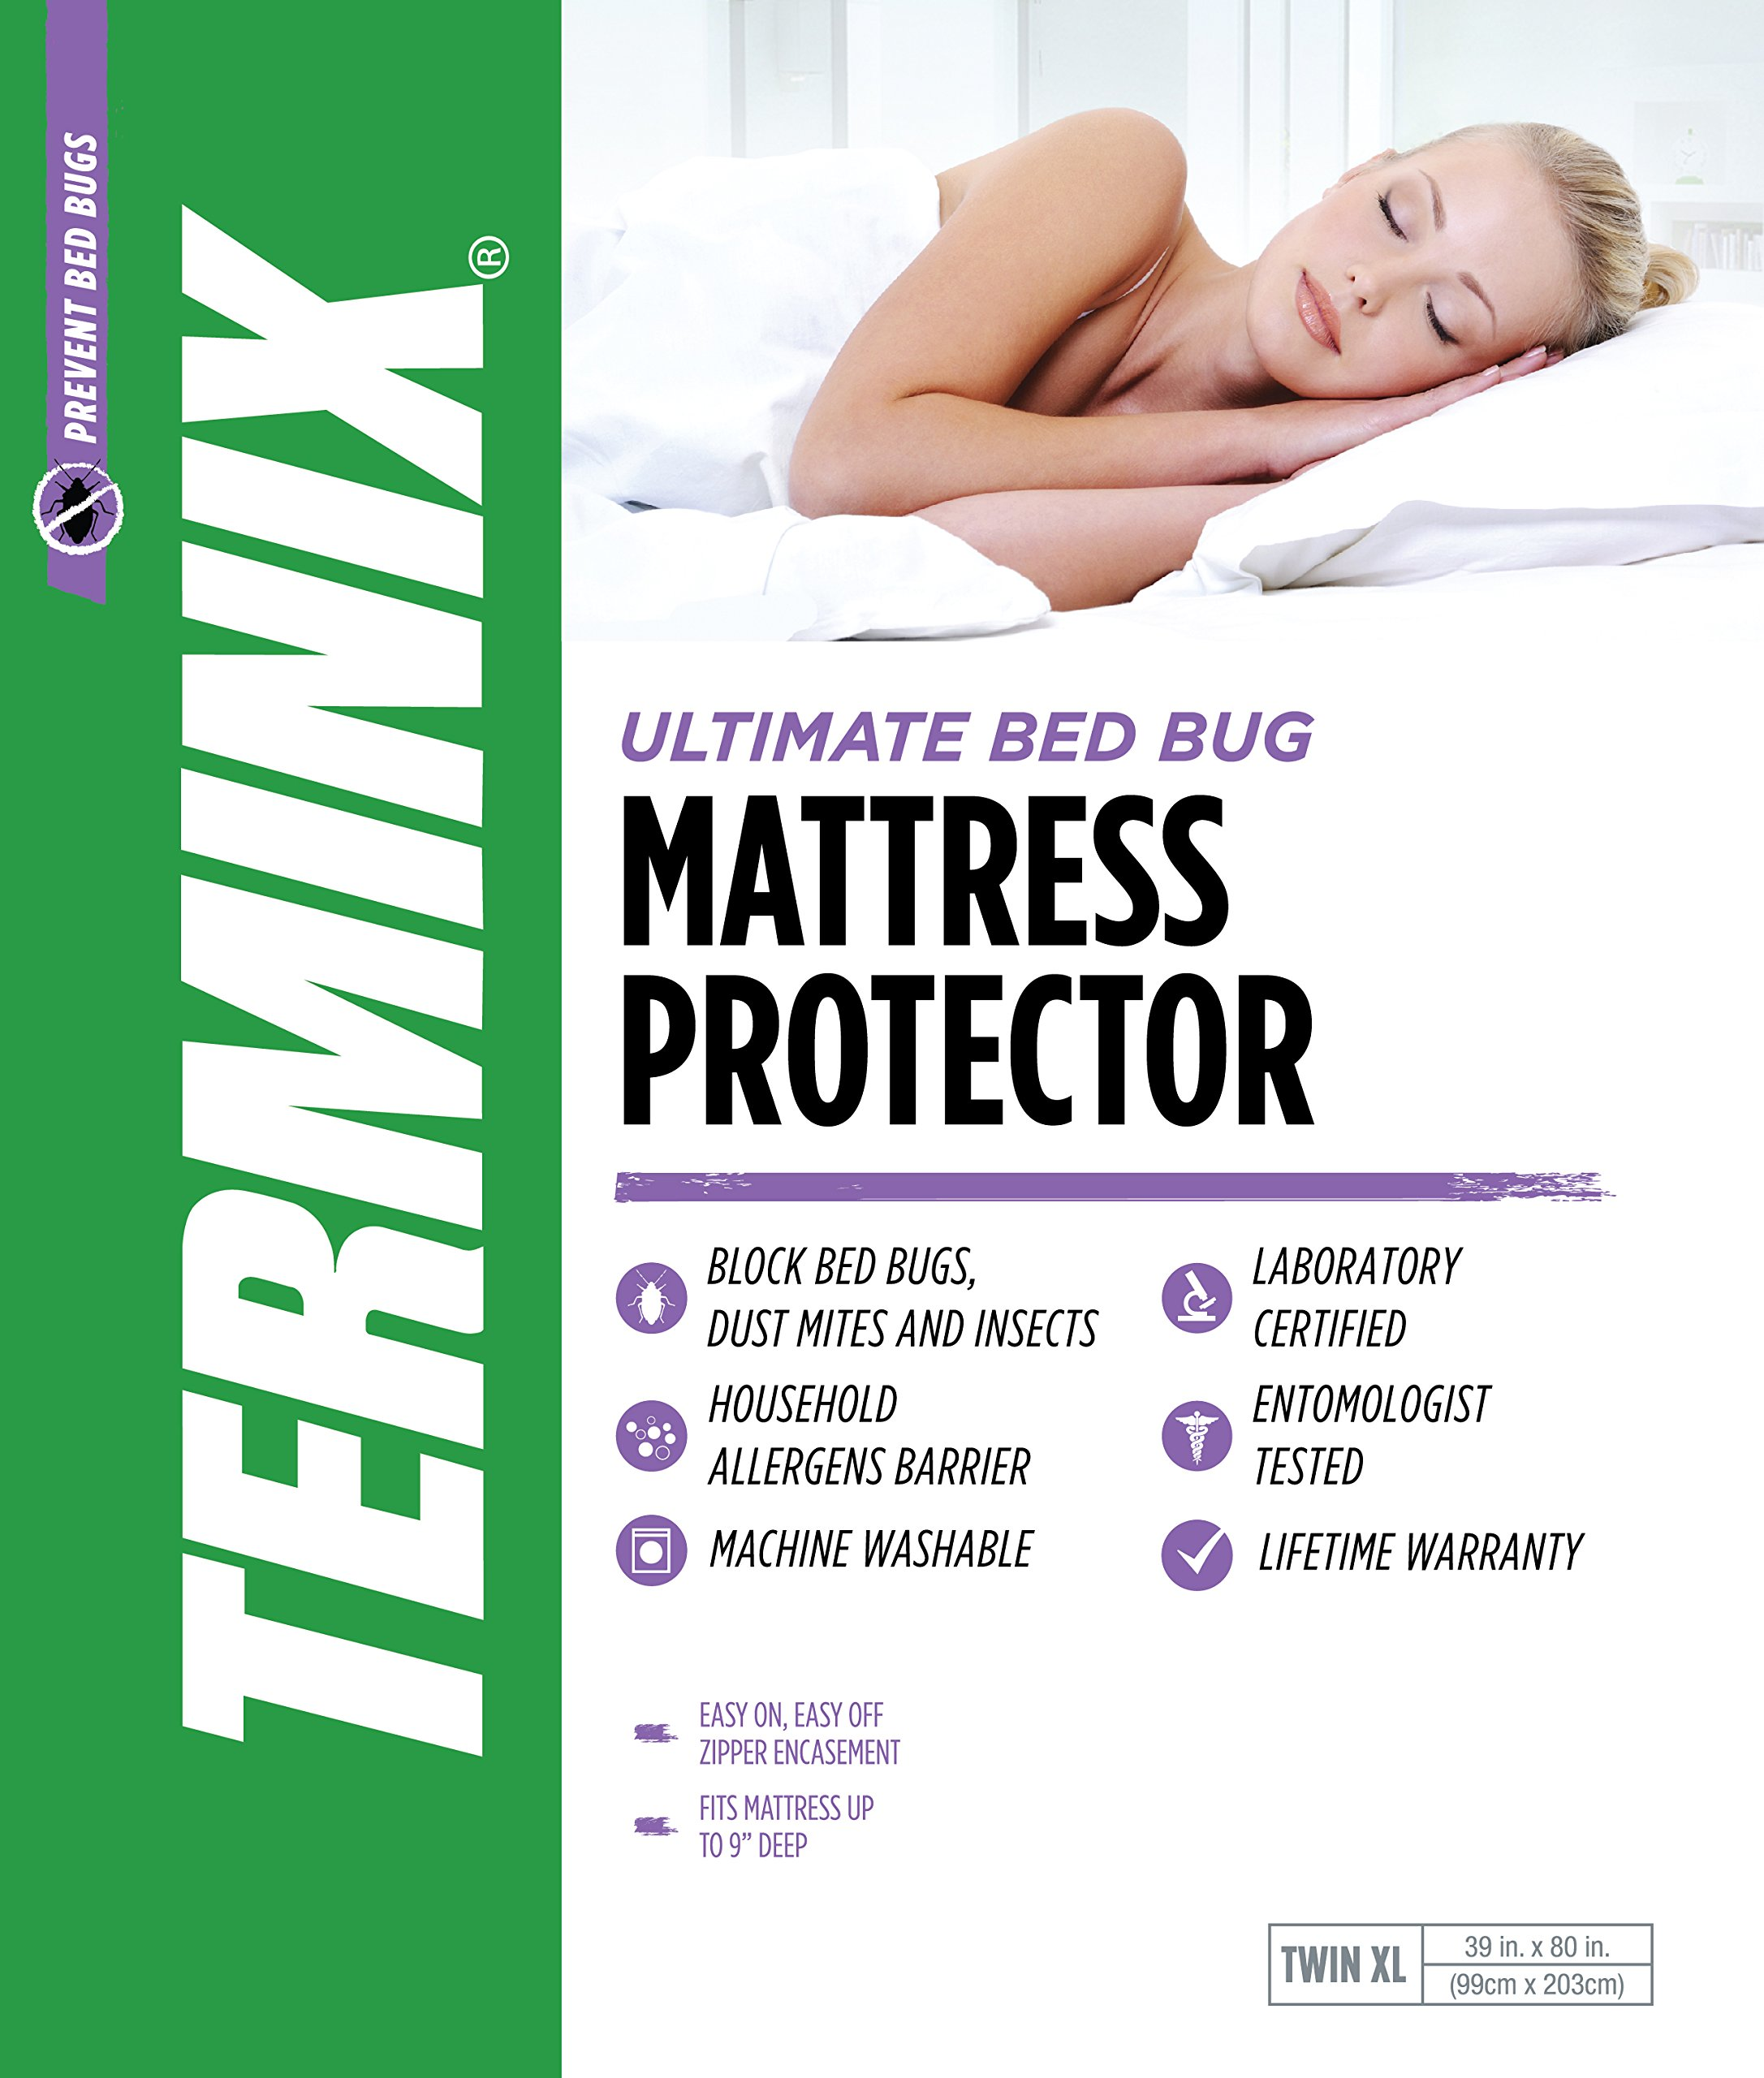 TERMINIX Ultimate Mattress Protector - 6-Sided Water-Resistant Zippered Encasement Blocks Bed Bugs, Dust Mites, Insects, & Allergens - Machine Washable - up to 11'' - Twin XL